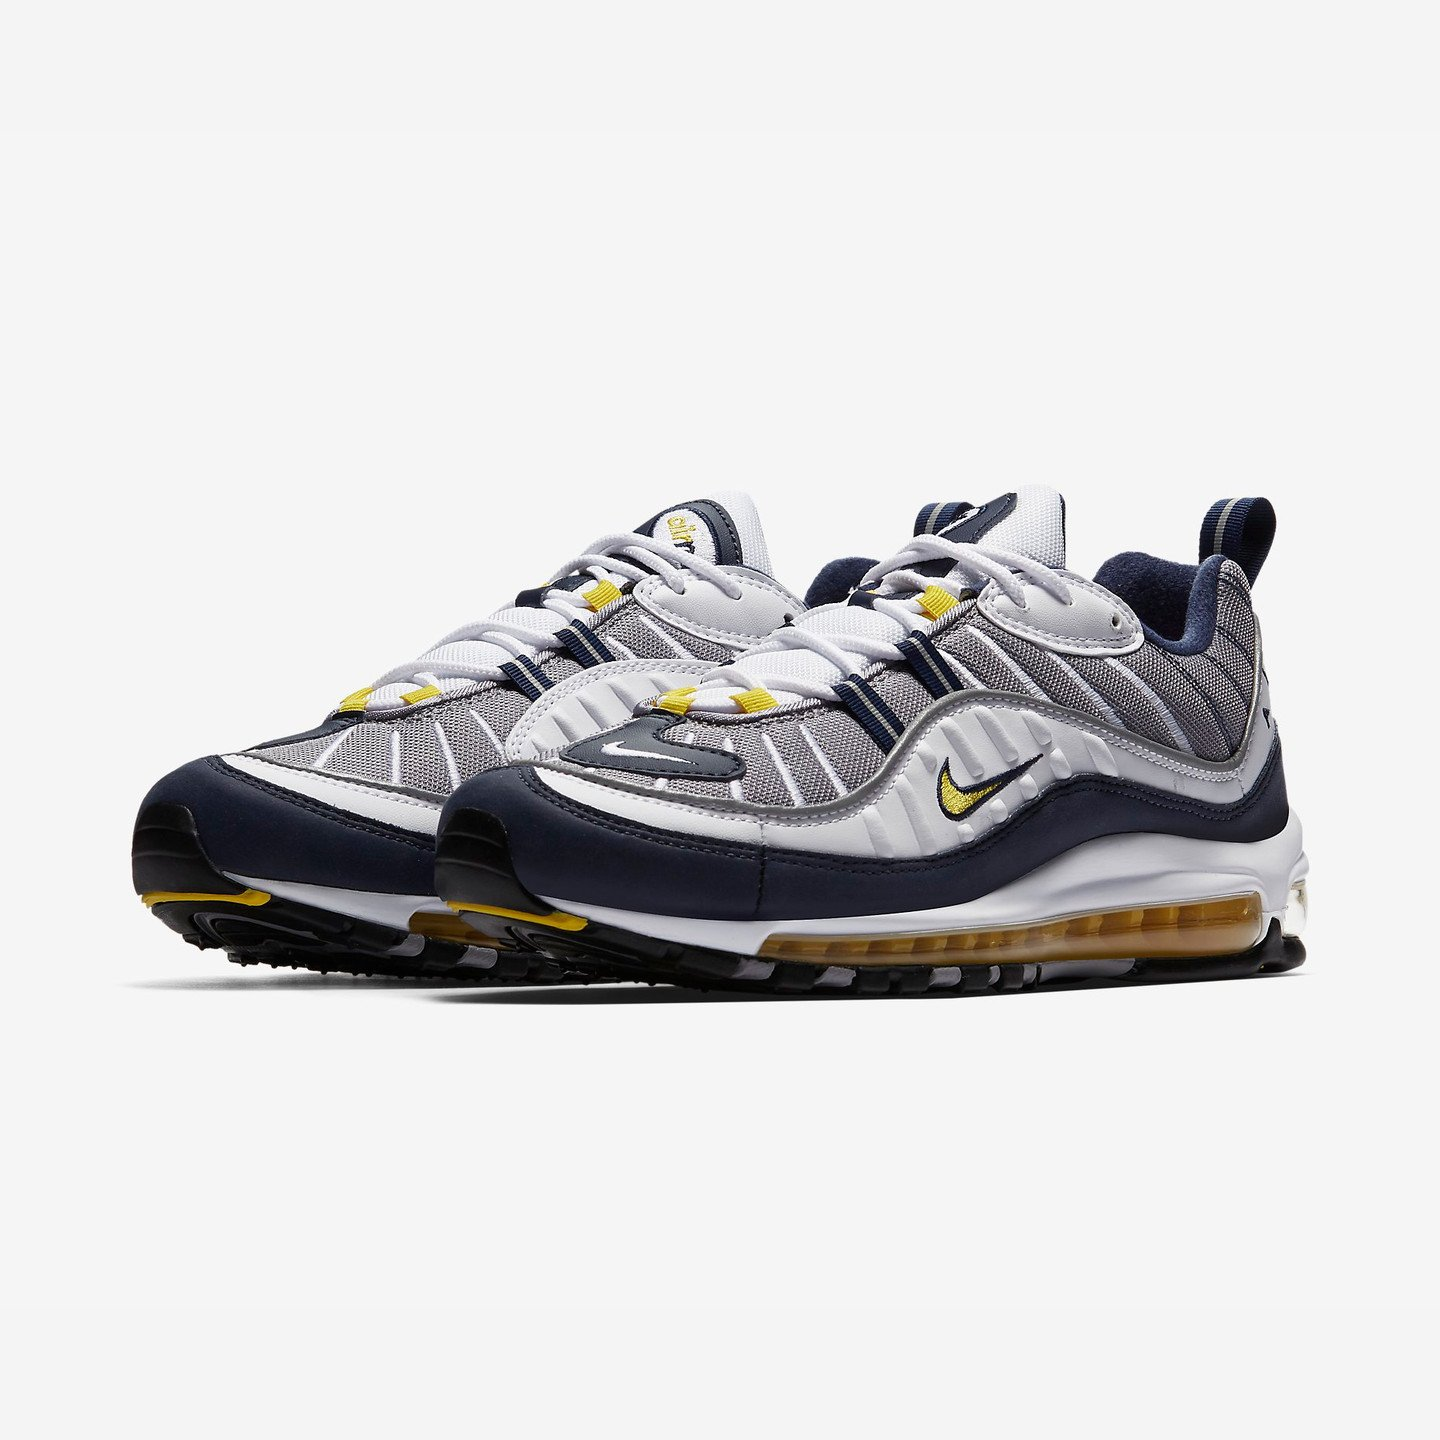 Nike Air Max 98 OG 'Michigan' White / Tour Yellow / Midnight Navy / Cement Grey 640744-105